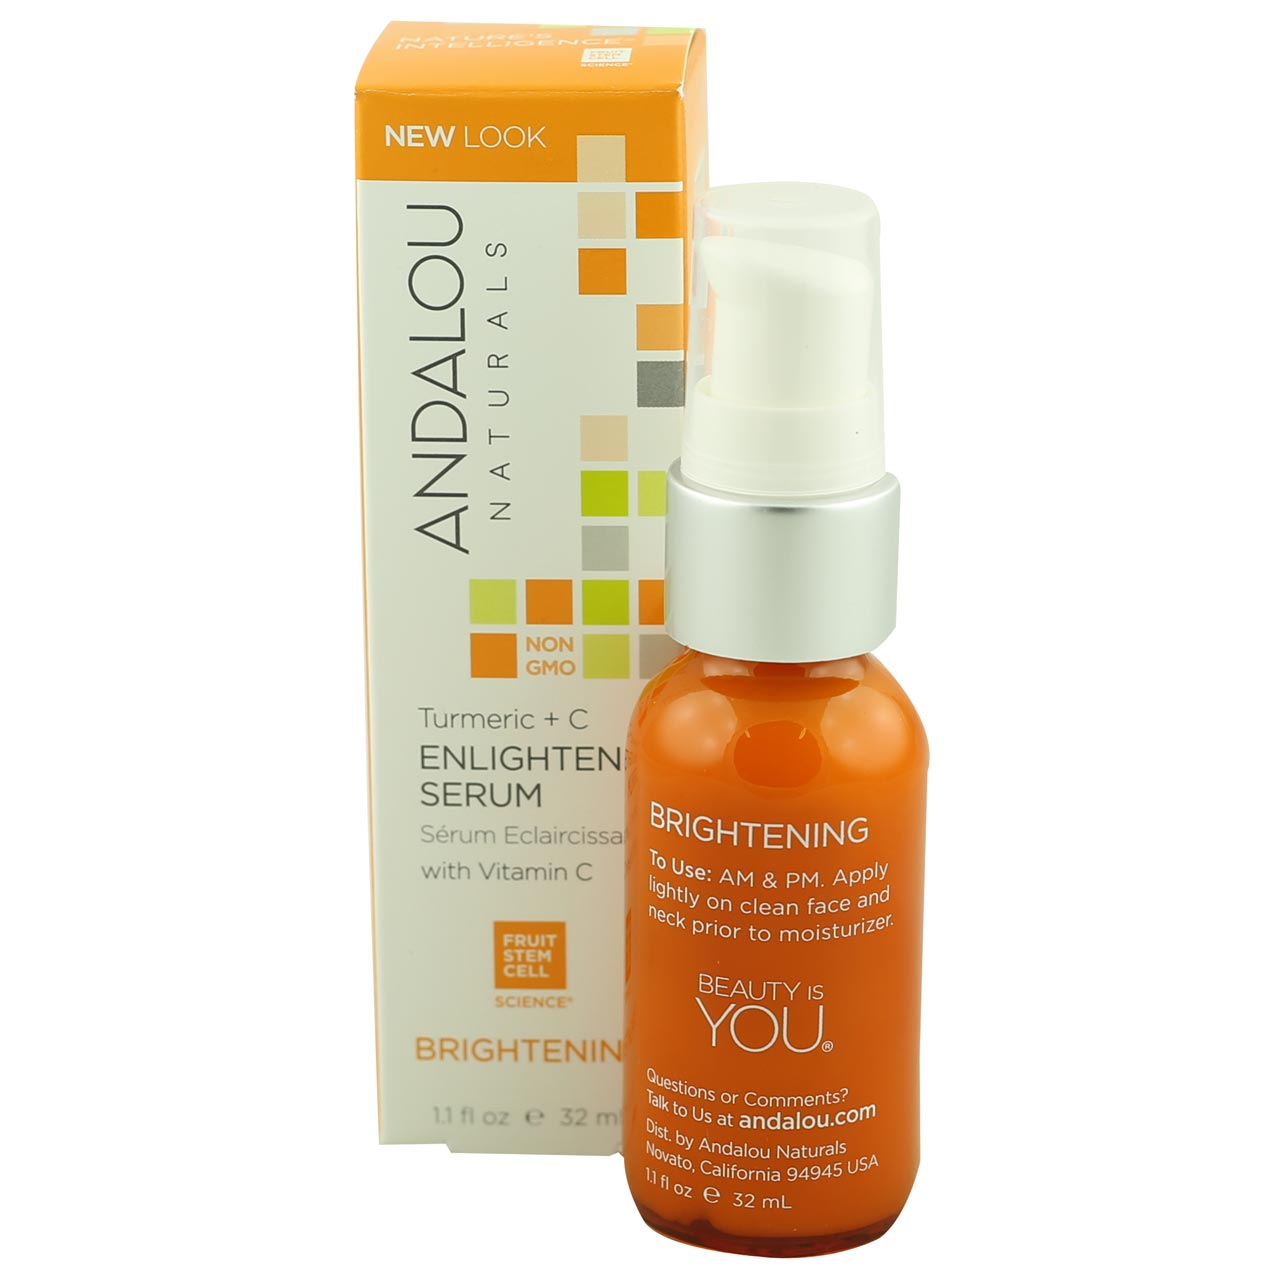 Andalou Enlighten Serum